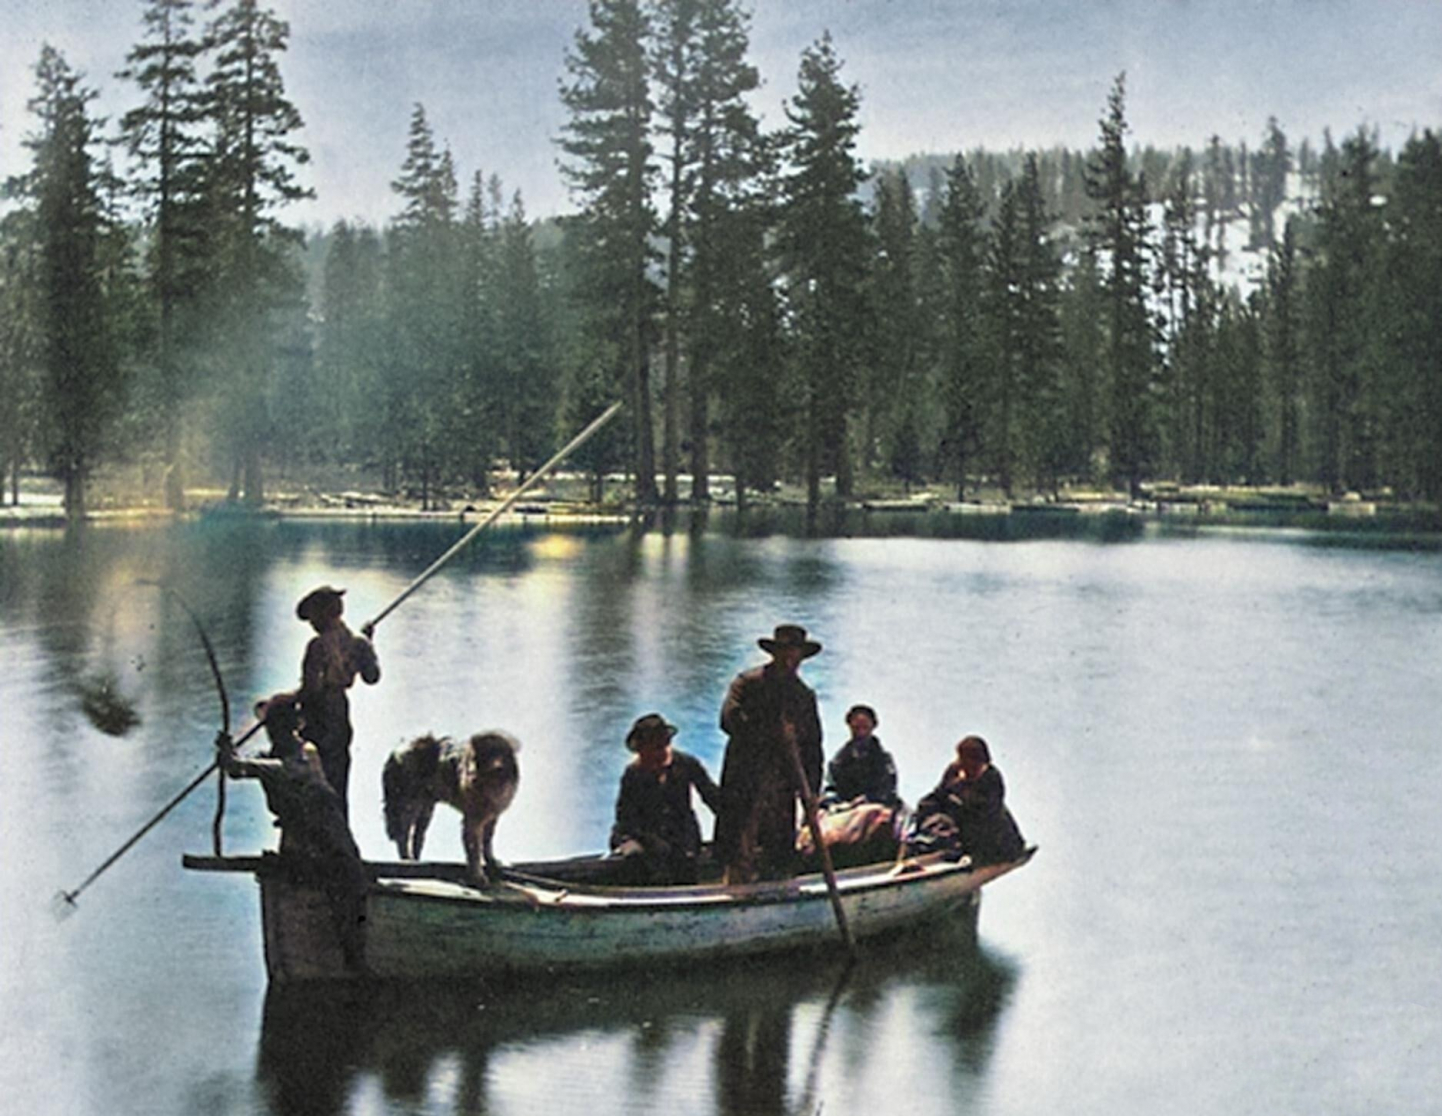 gallery/1866 torchlight fish spearing donner lake colorized